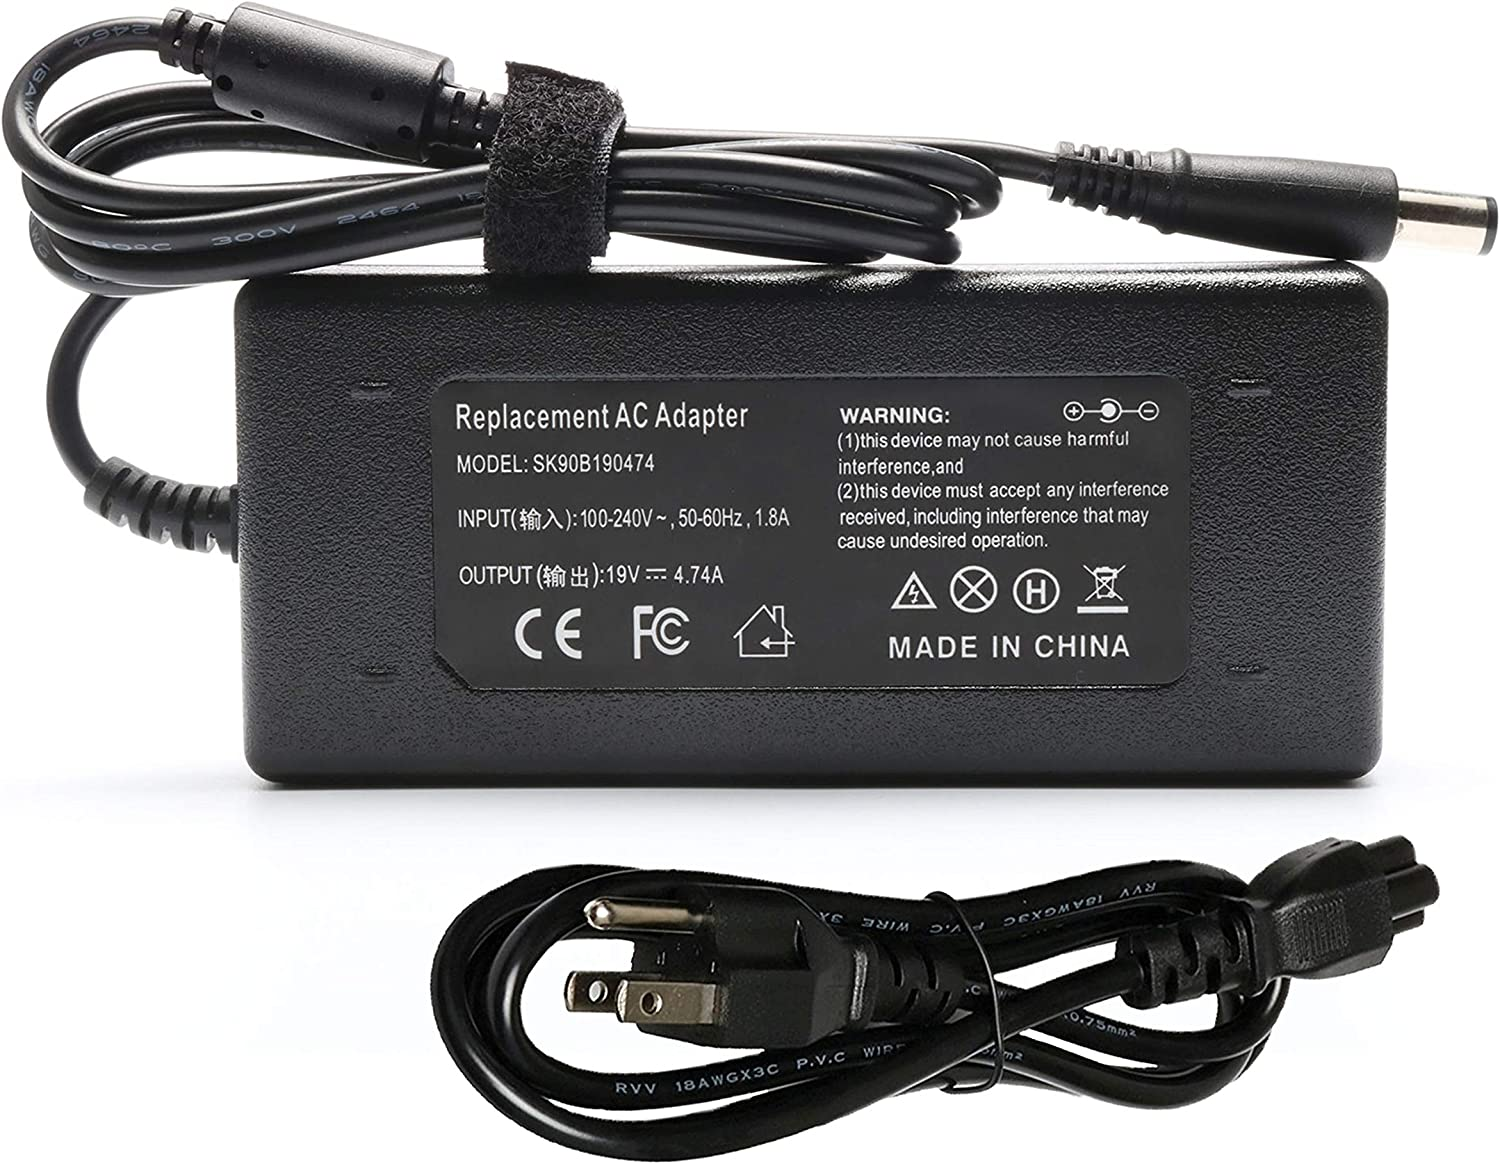 90W 19V 4.74A AC Adapter Charger for HP Pavilion Dv4 Dv6 Dv7 G40 G42 G50 G51 G60 G60T G61 G62 G70 G72 2000 2000-2B19WM 2000-2B29WM 2000-2D11DX;HP Compaq 2230S 2710P 6510B 6515B 8510P 8510W Power Cord